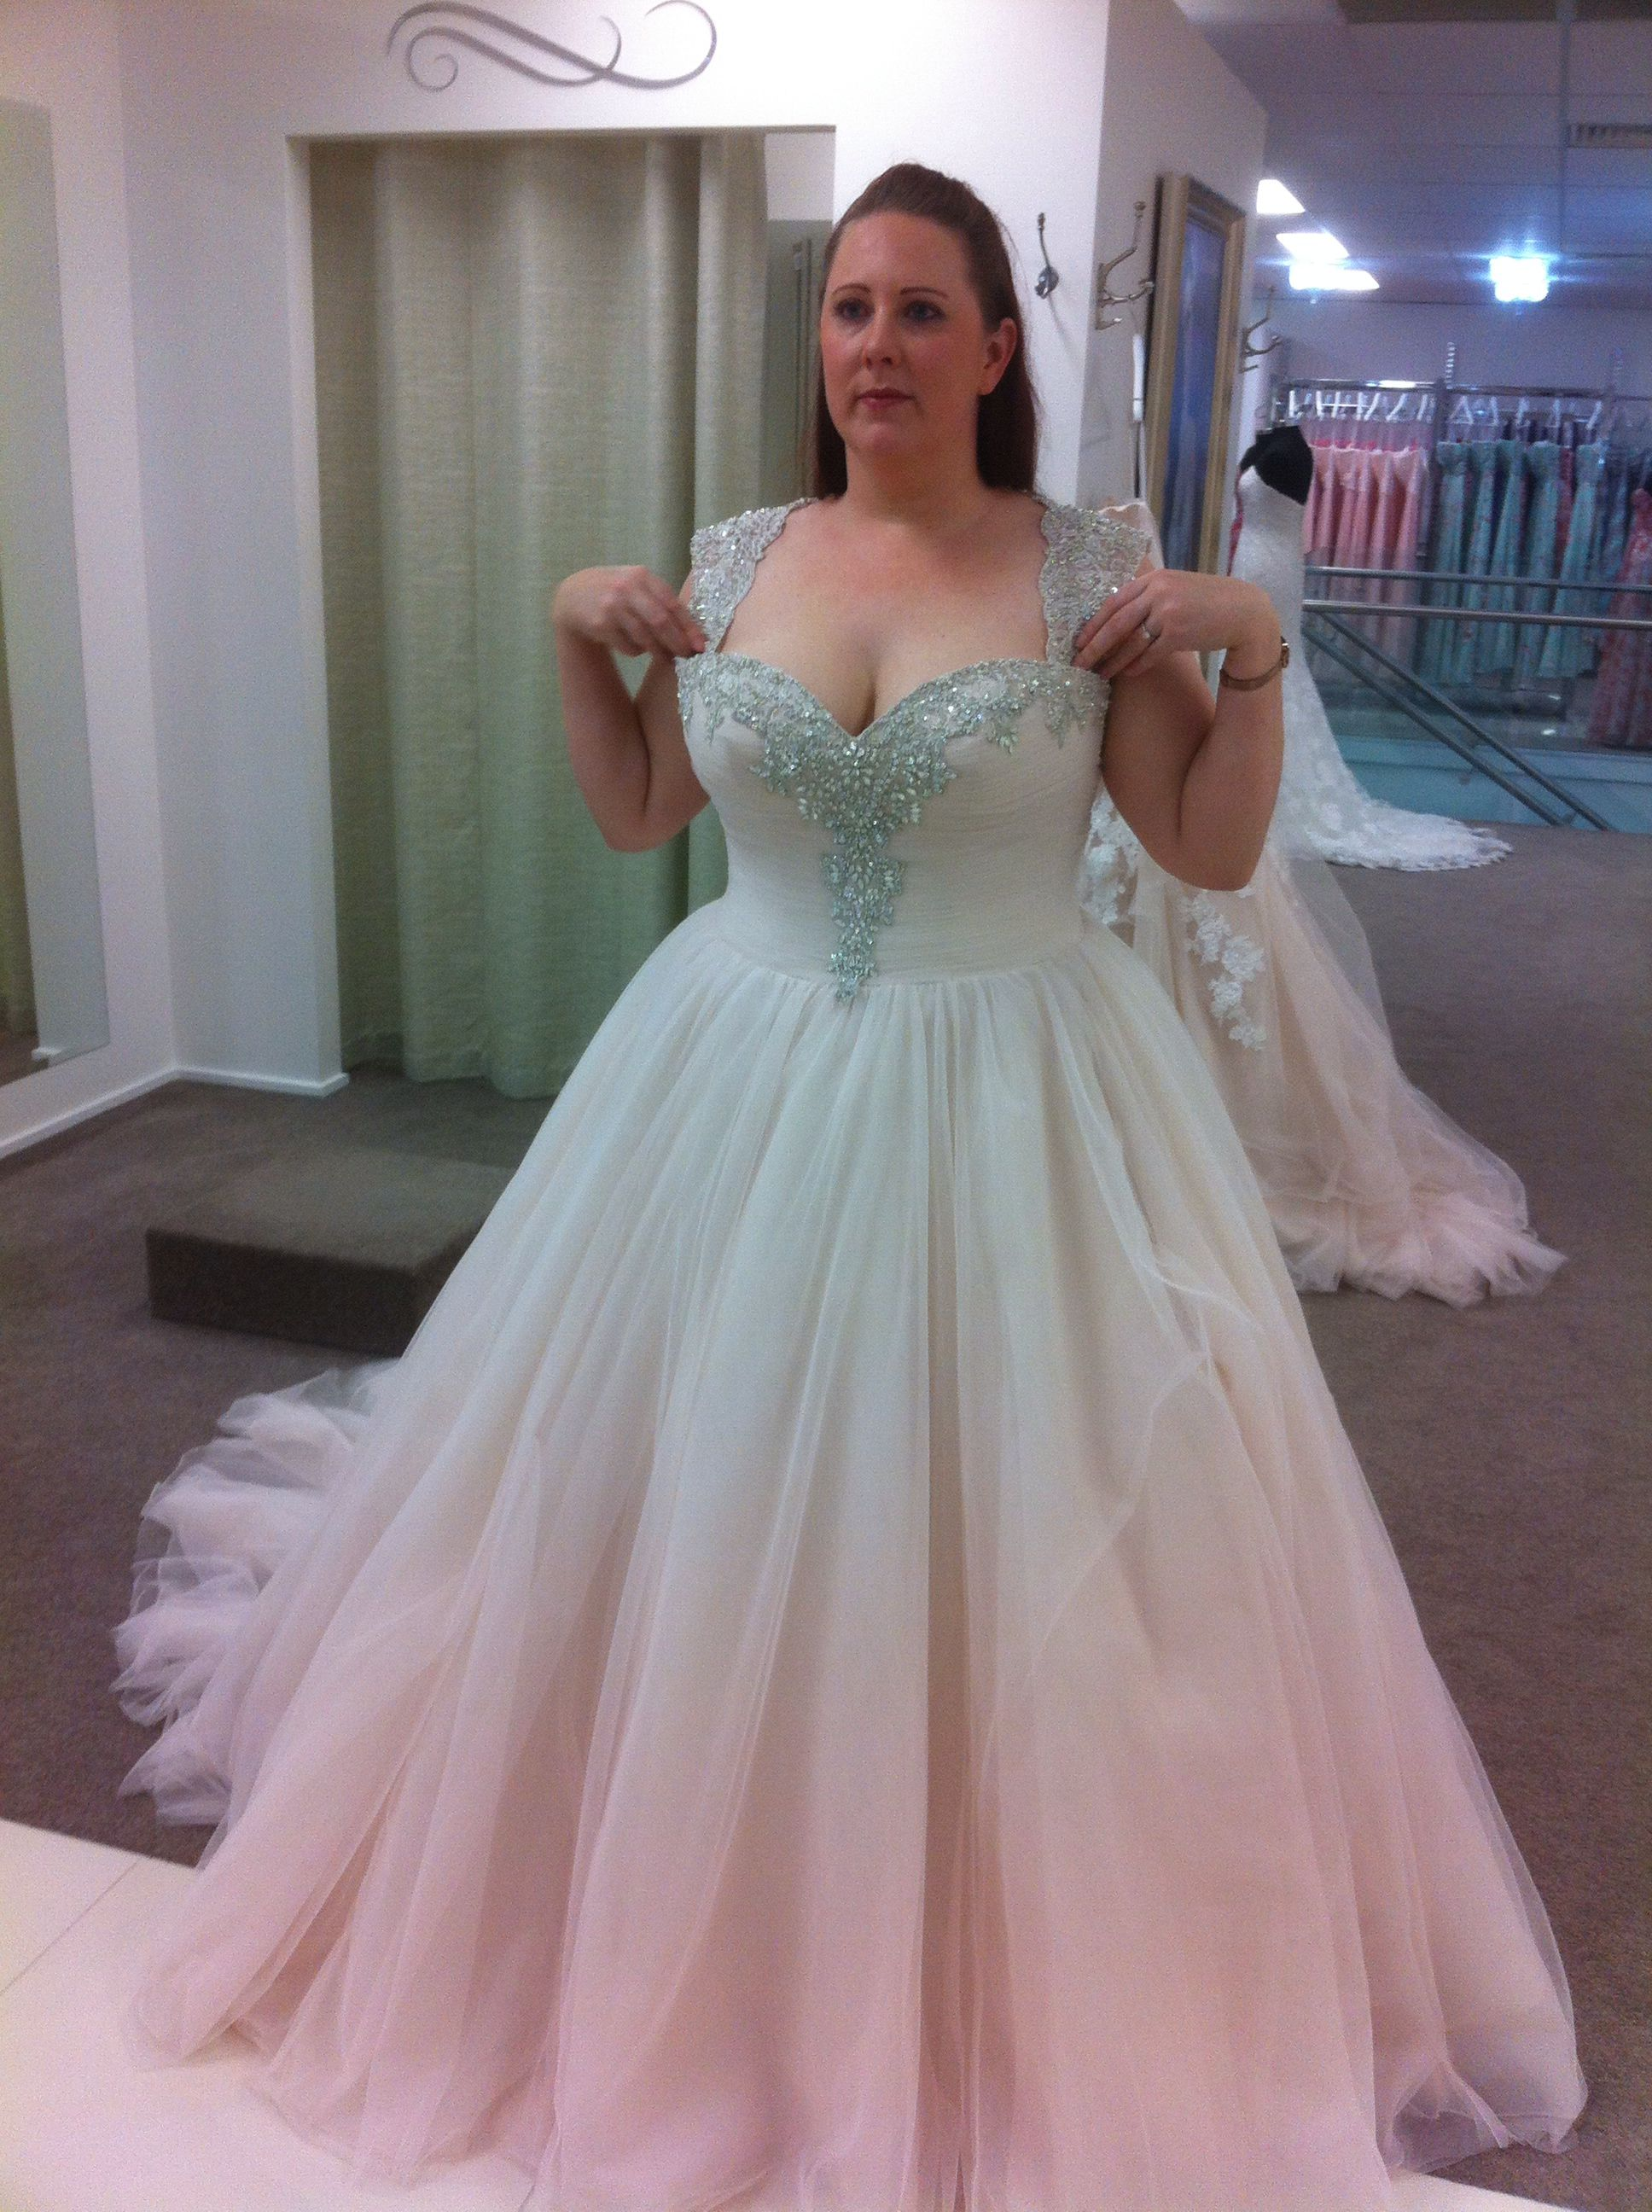 Plus Size Wedding Dress I Love This But Would Want Purple Instead Wedding Gown Backless Wedding Dresses Plus Wedding Dresses [ jpg ]